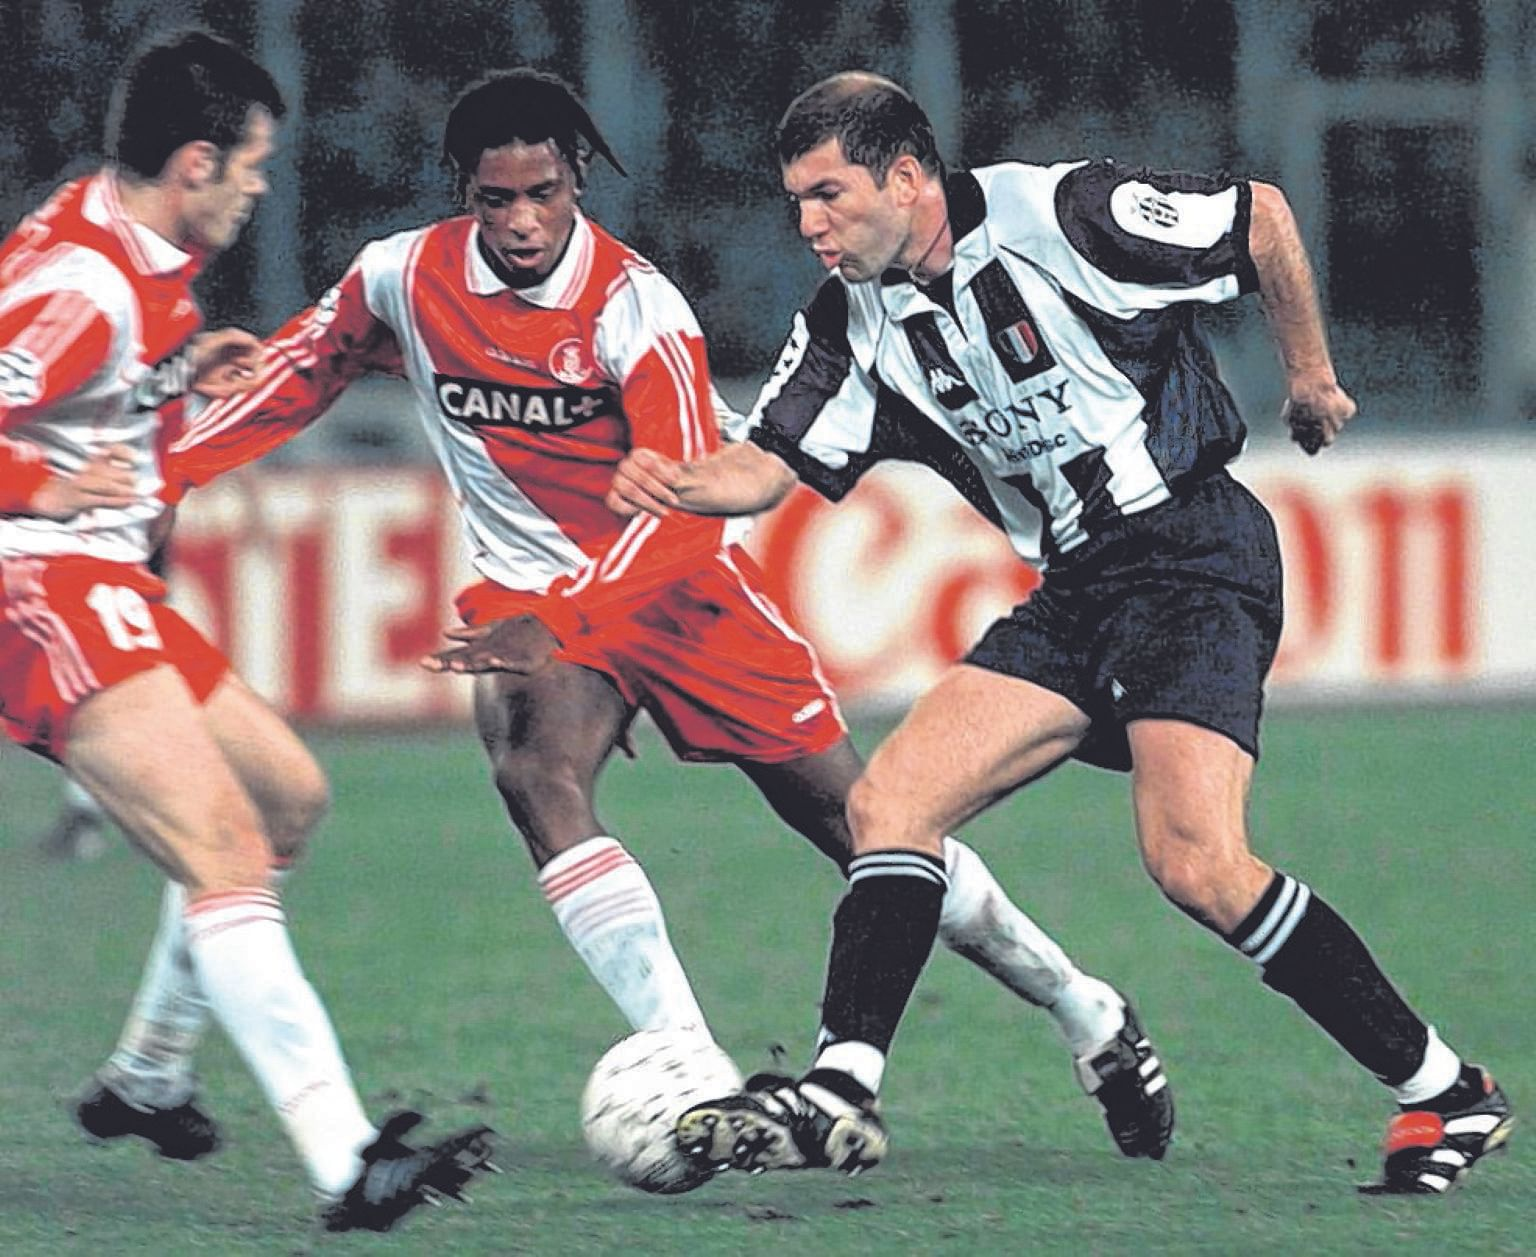 Former Juventus favourite Zinedine Zidane (right) playing for the Italian side in the Champions League in 1998. The Frenchman will be looking to break Bianconeri hearts, with the Real Madrid coach aiming to be the mastermind behind his former team's